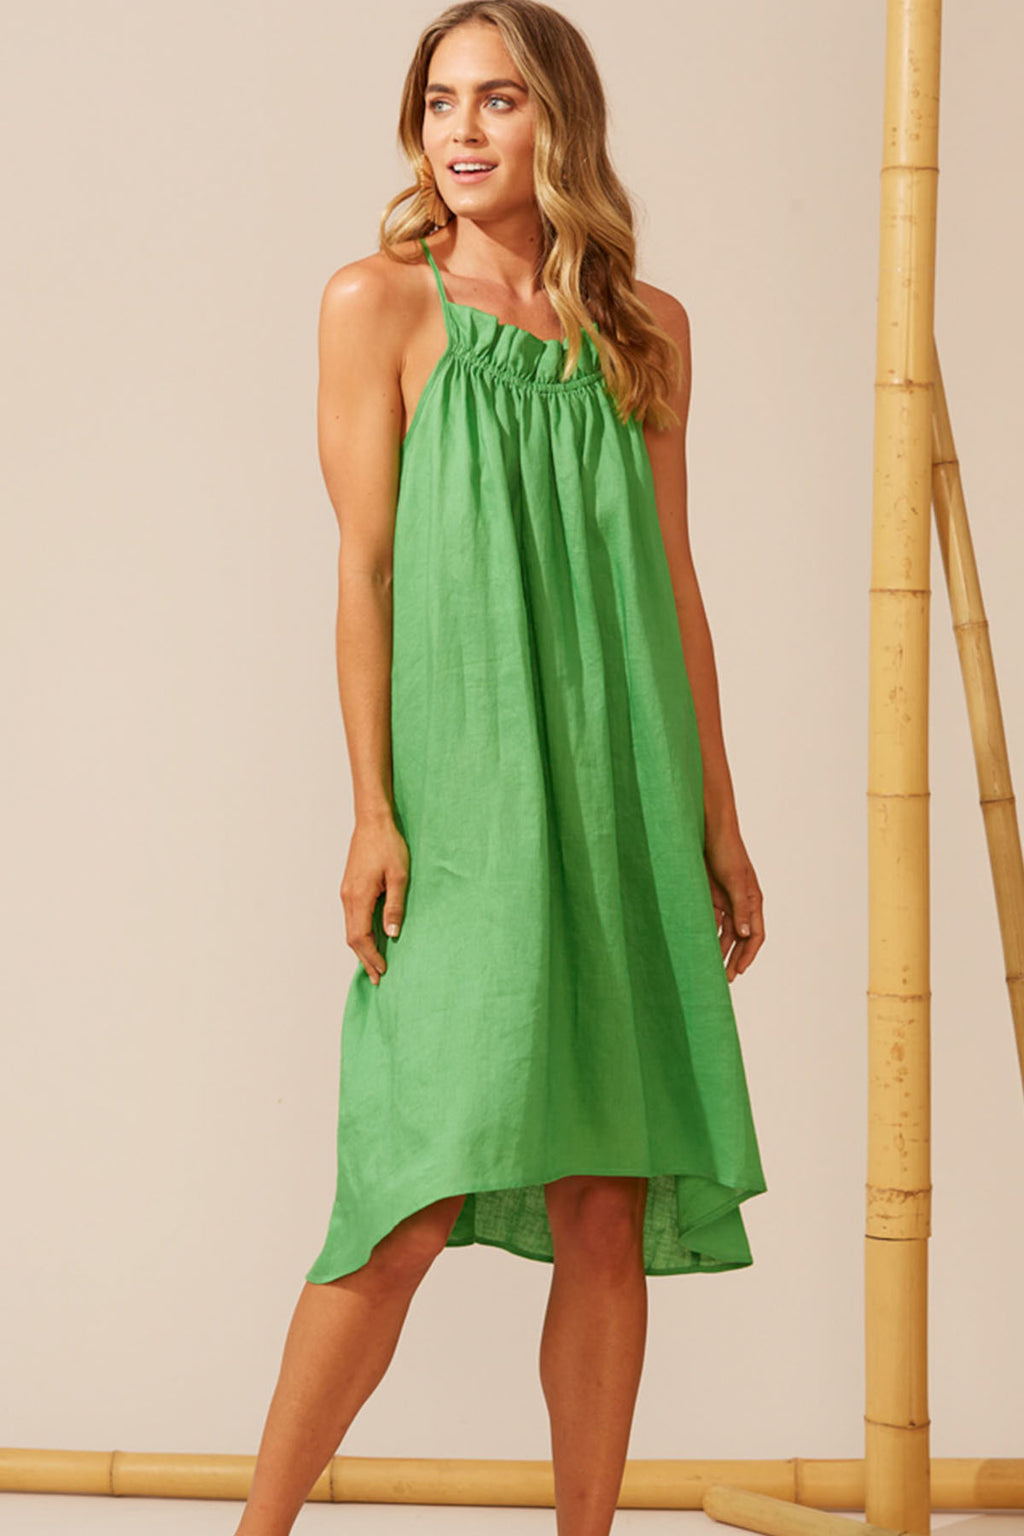 Martinique Frill Dress - Jade - The Bohemian Corner